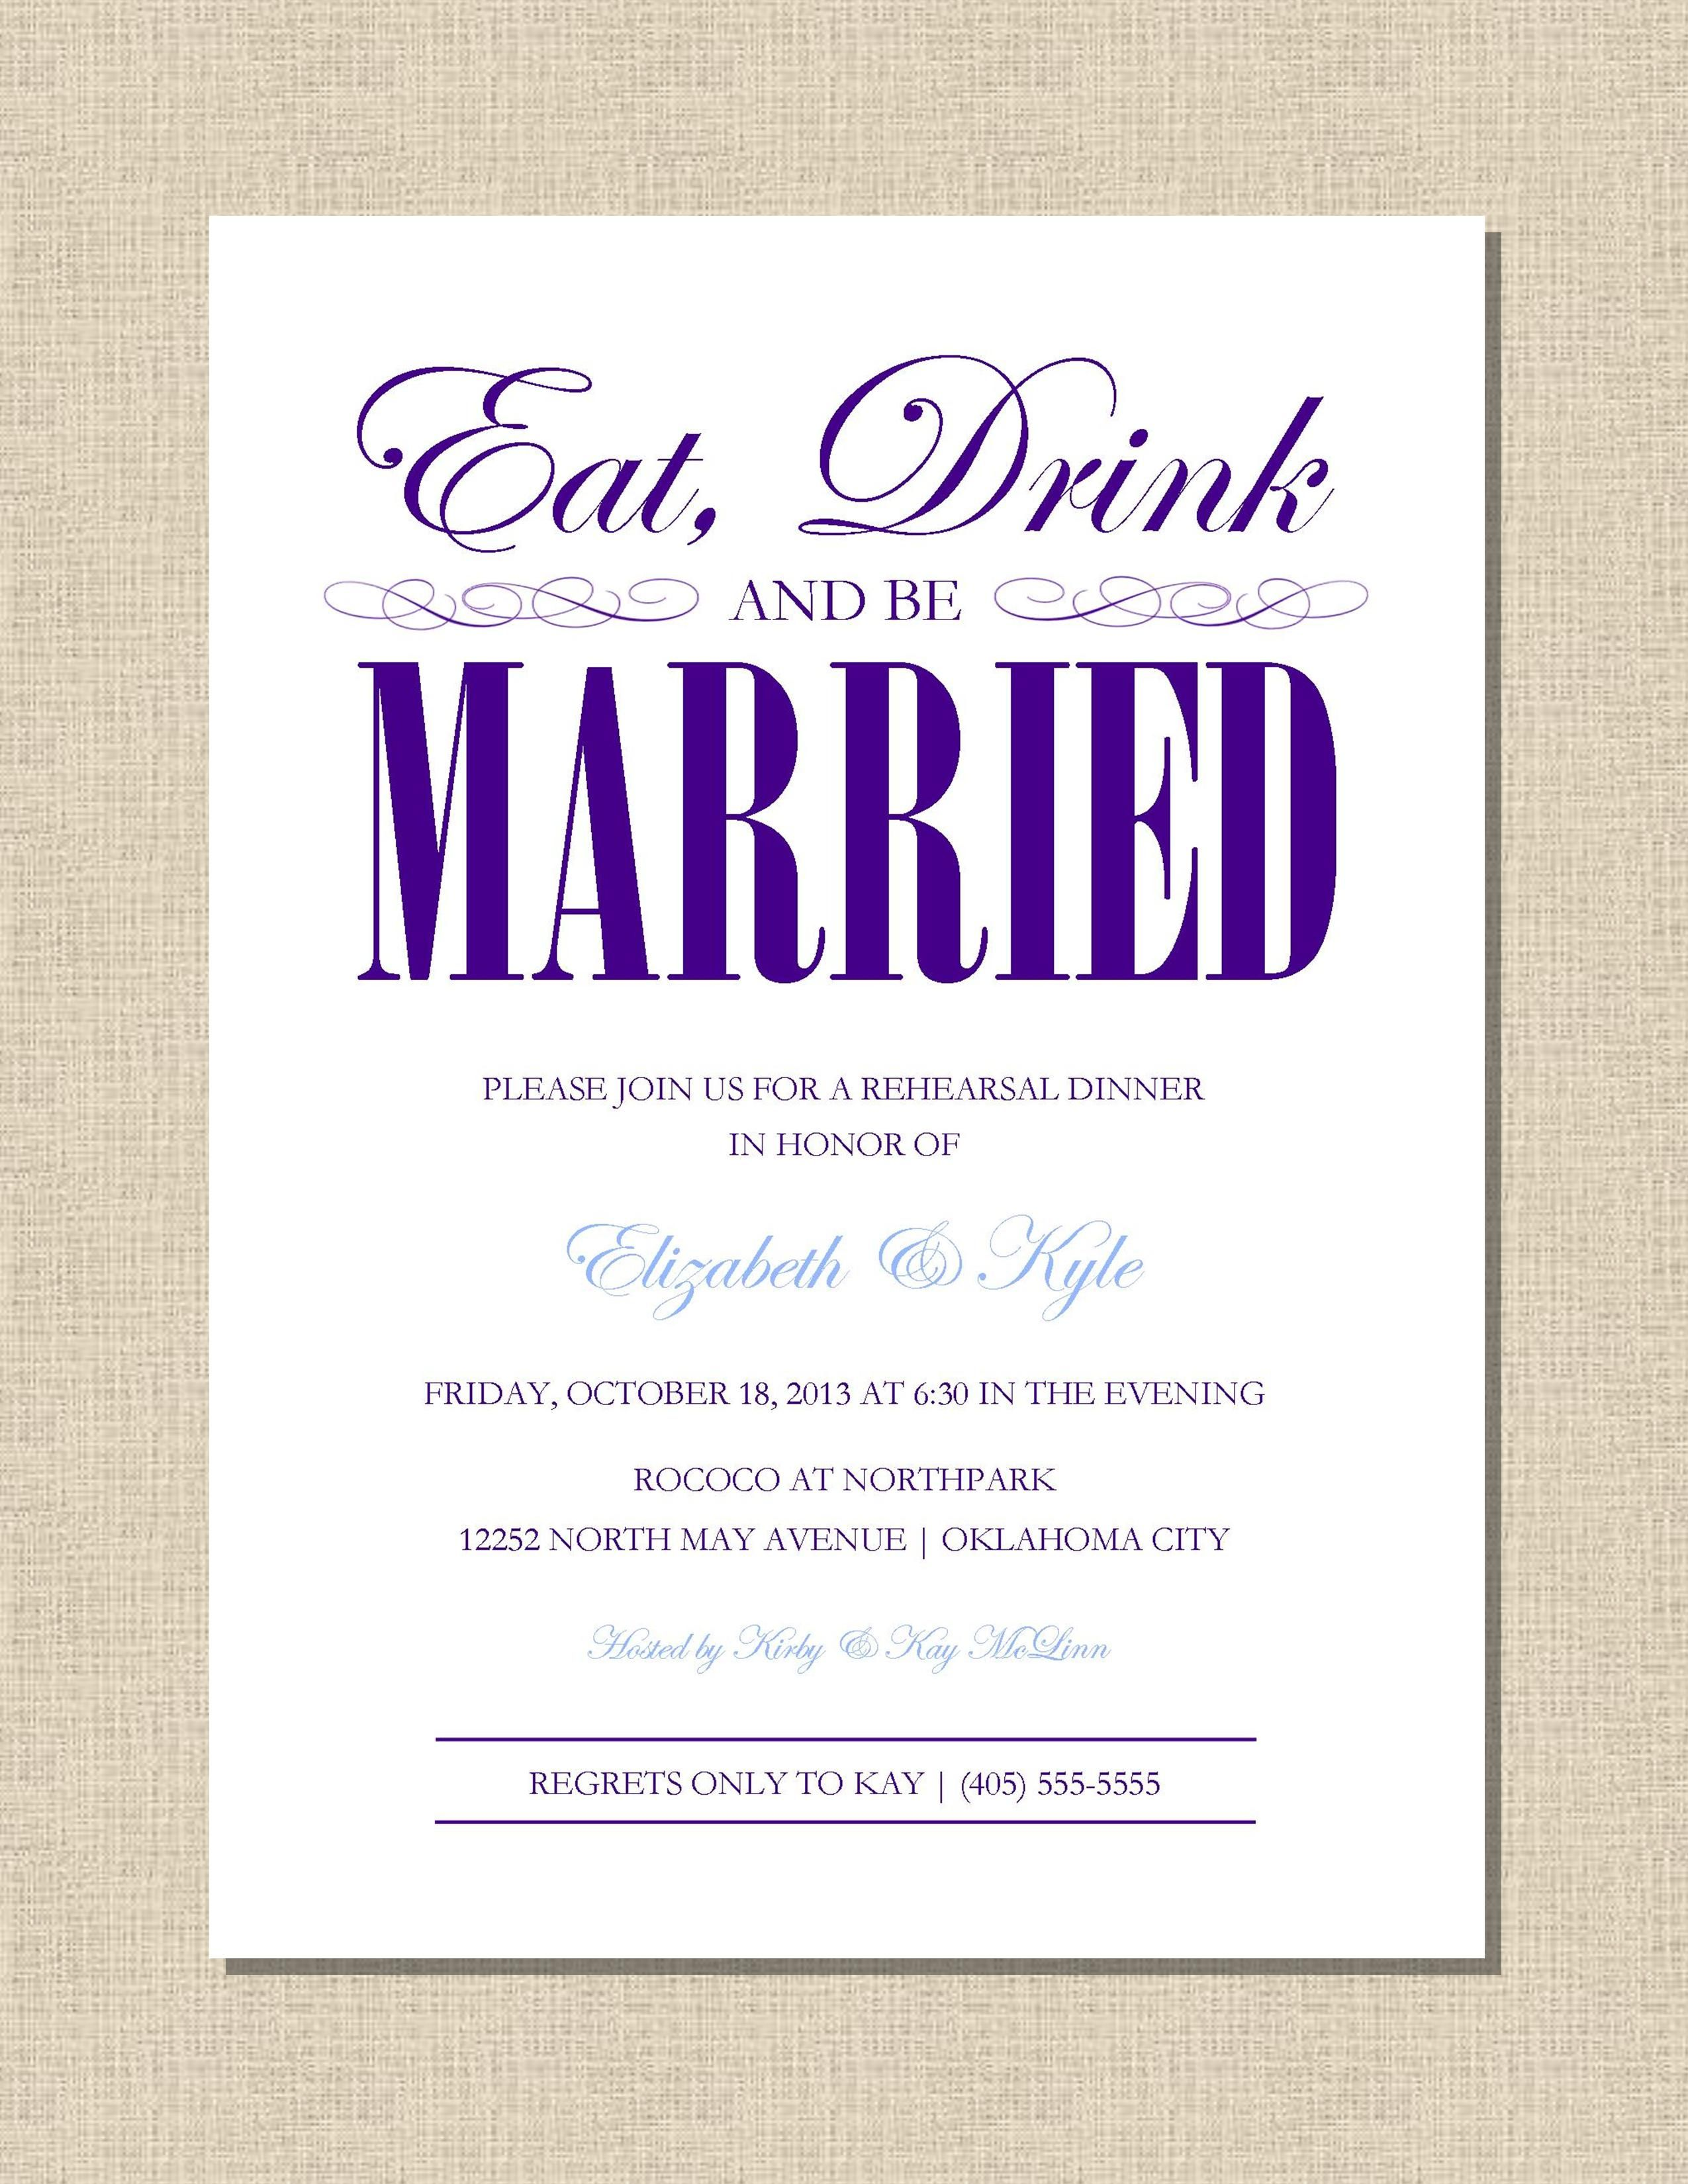 rehearsal dinner invitation by wentroth designs visit us on